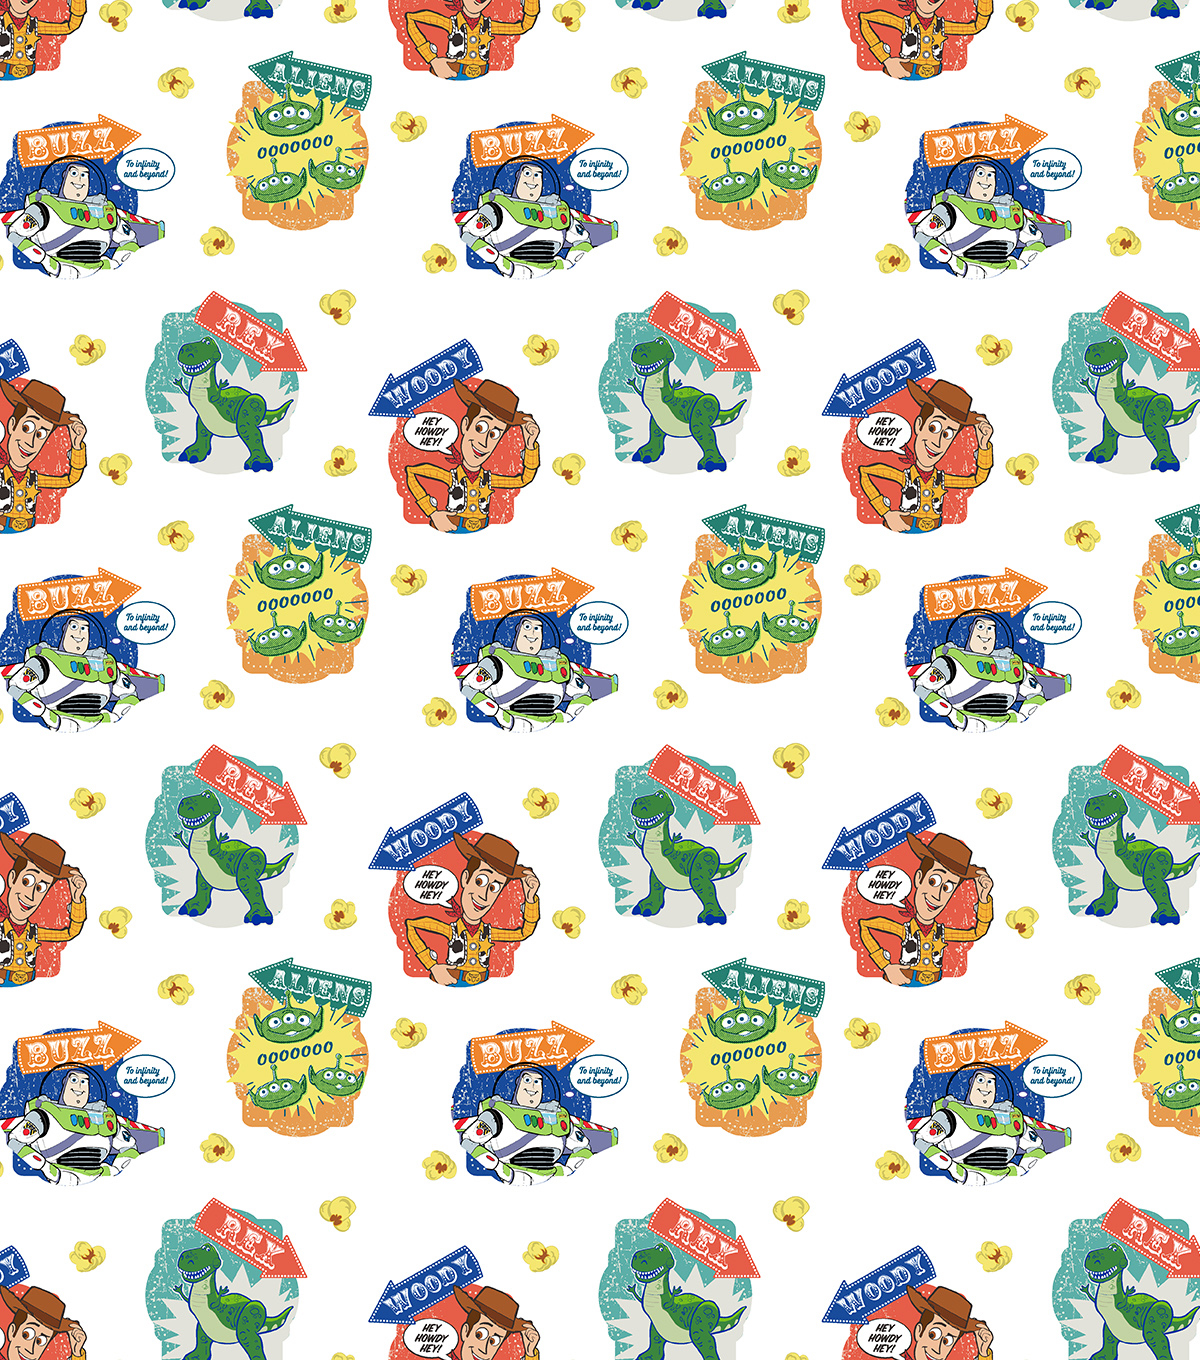 Disney Toy Story 4 Cotton Fabric-Character Badges